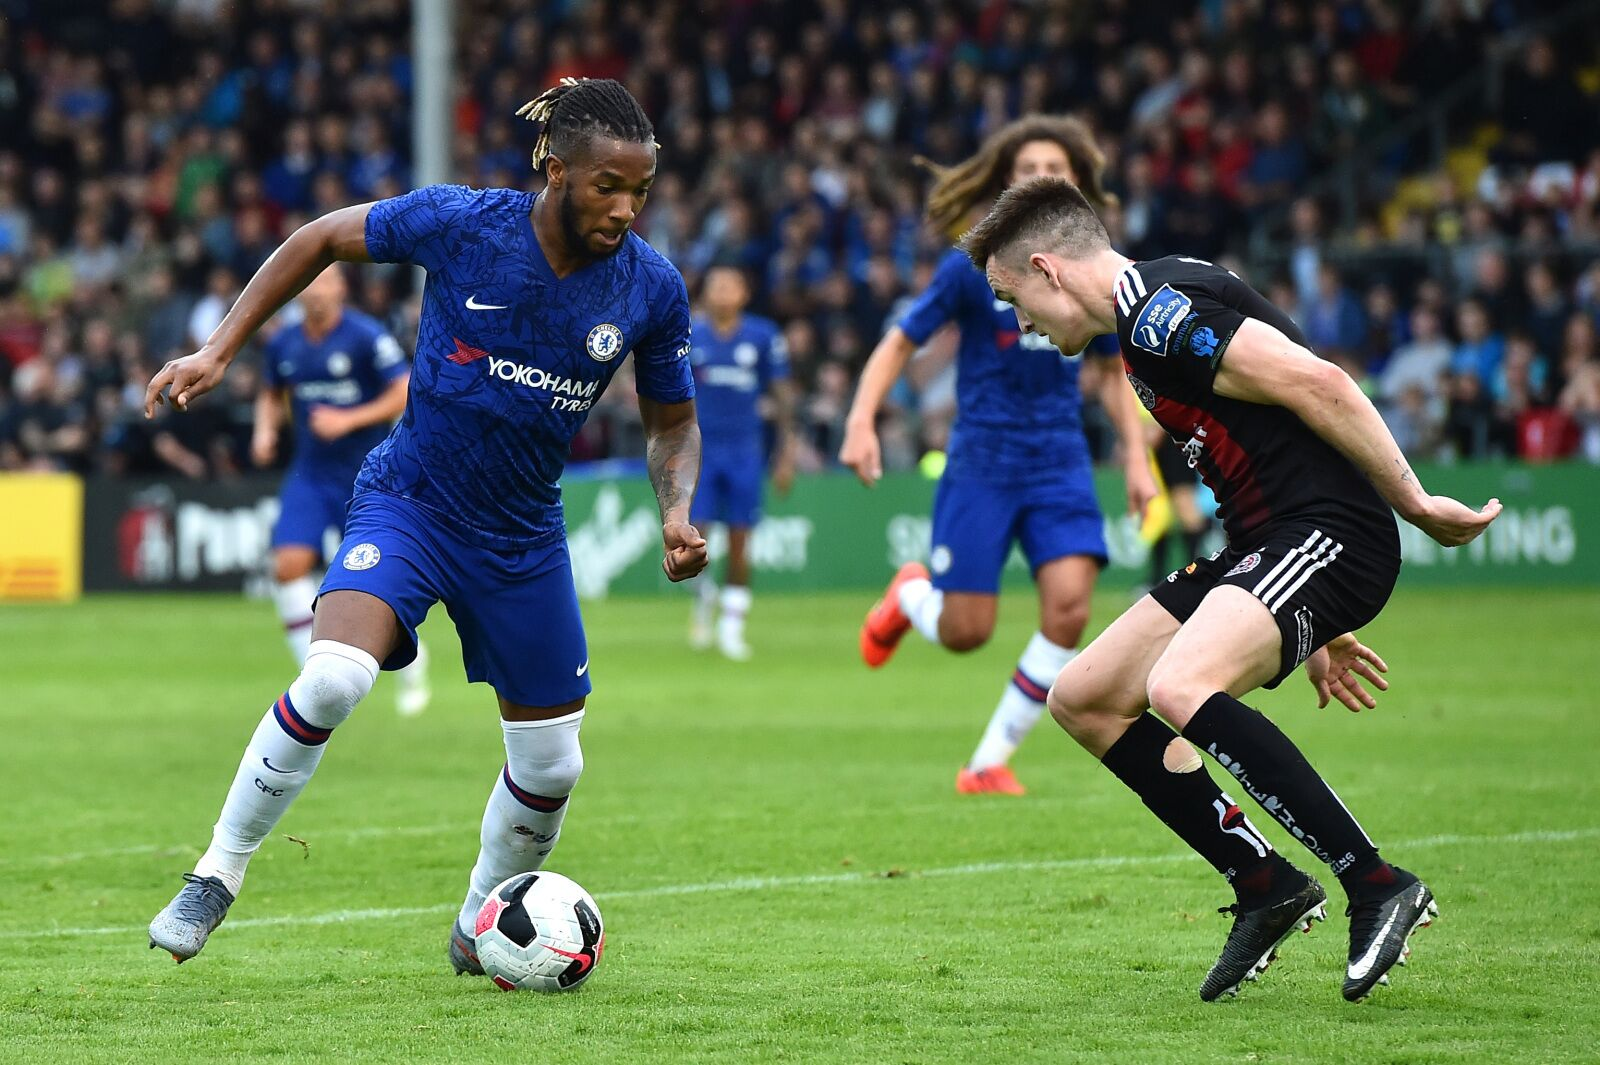 Chelsea academy graduates will never have another year like 2019/20